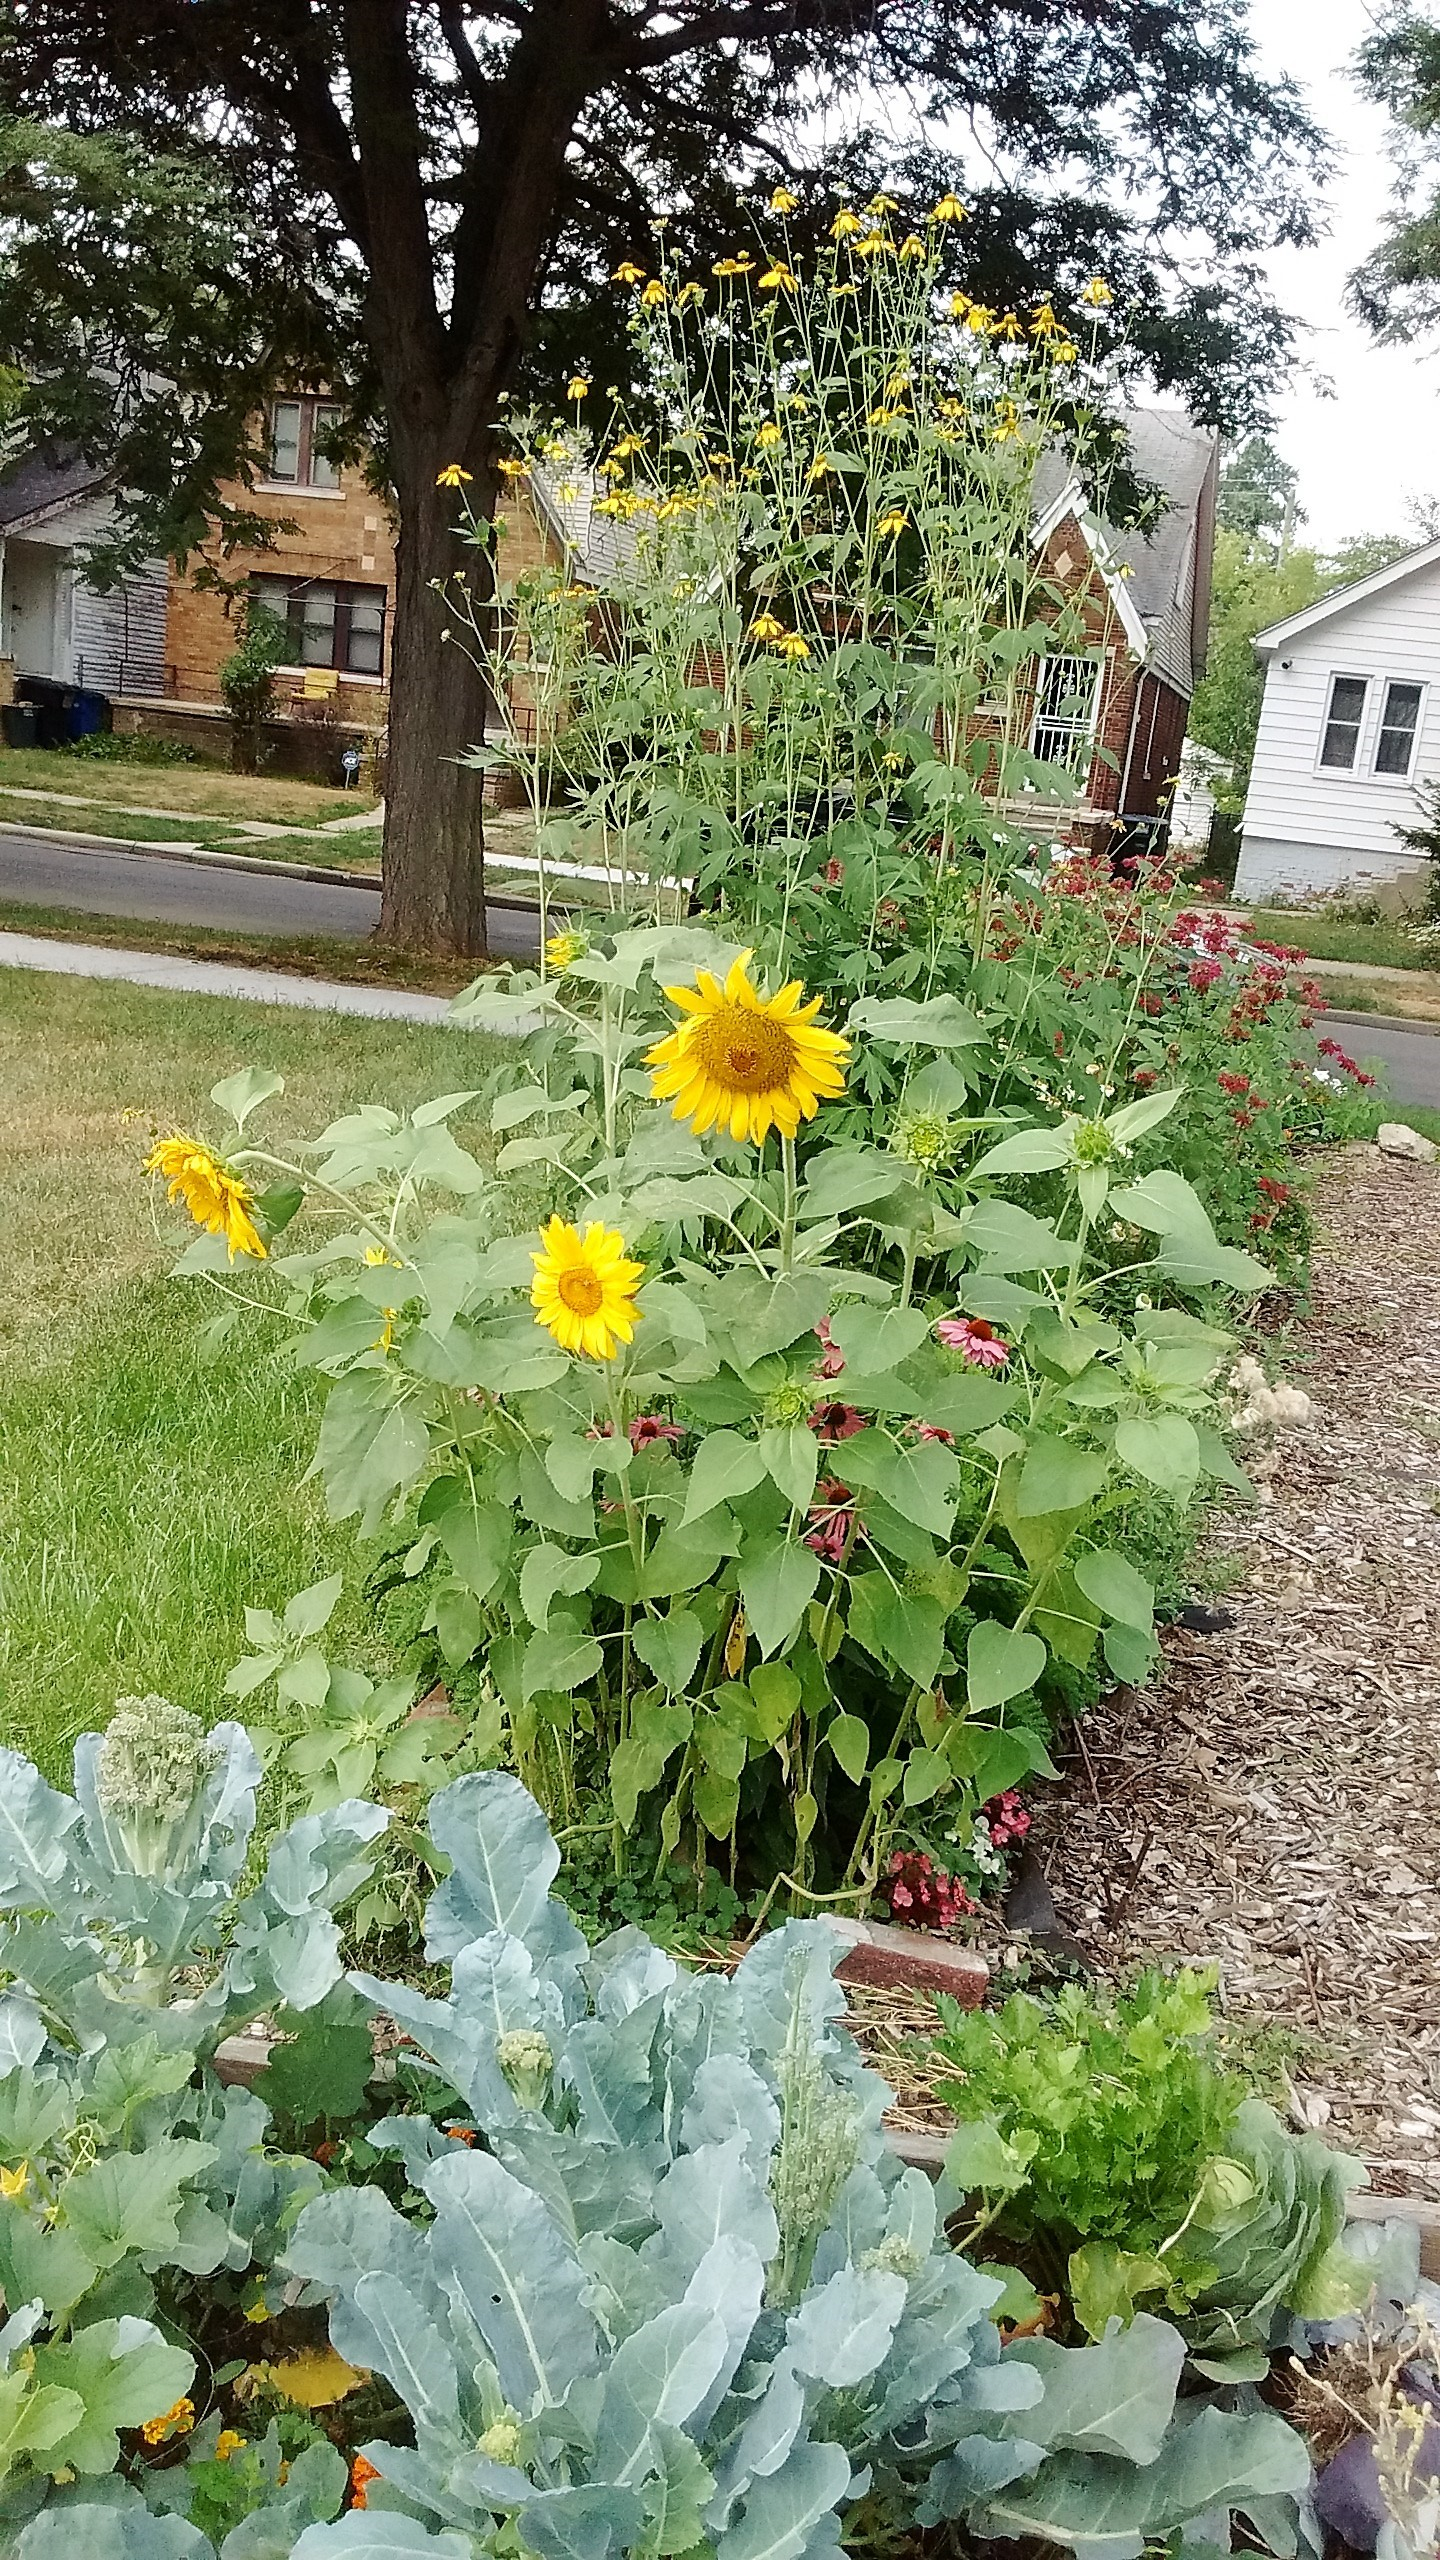 The Manistique Community Garden